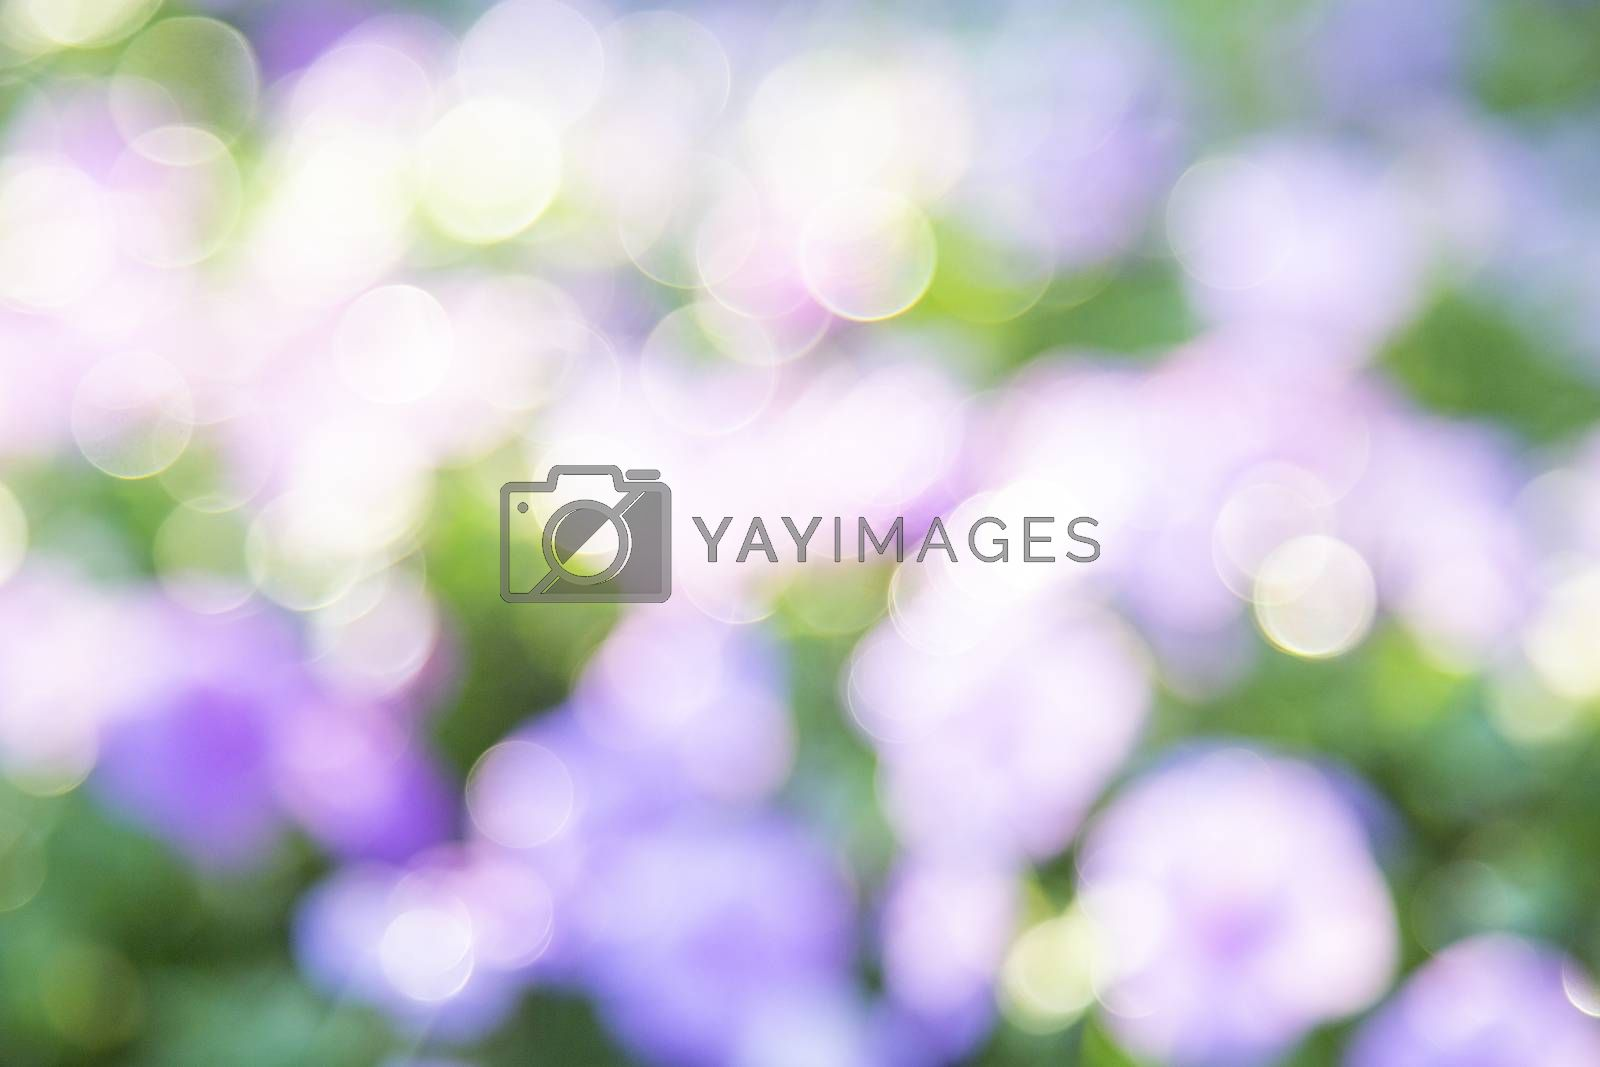 Abstract blur of nature with green and purple